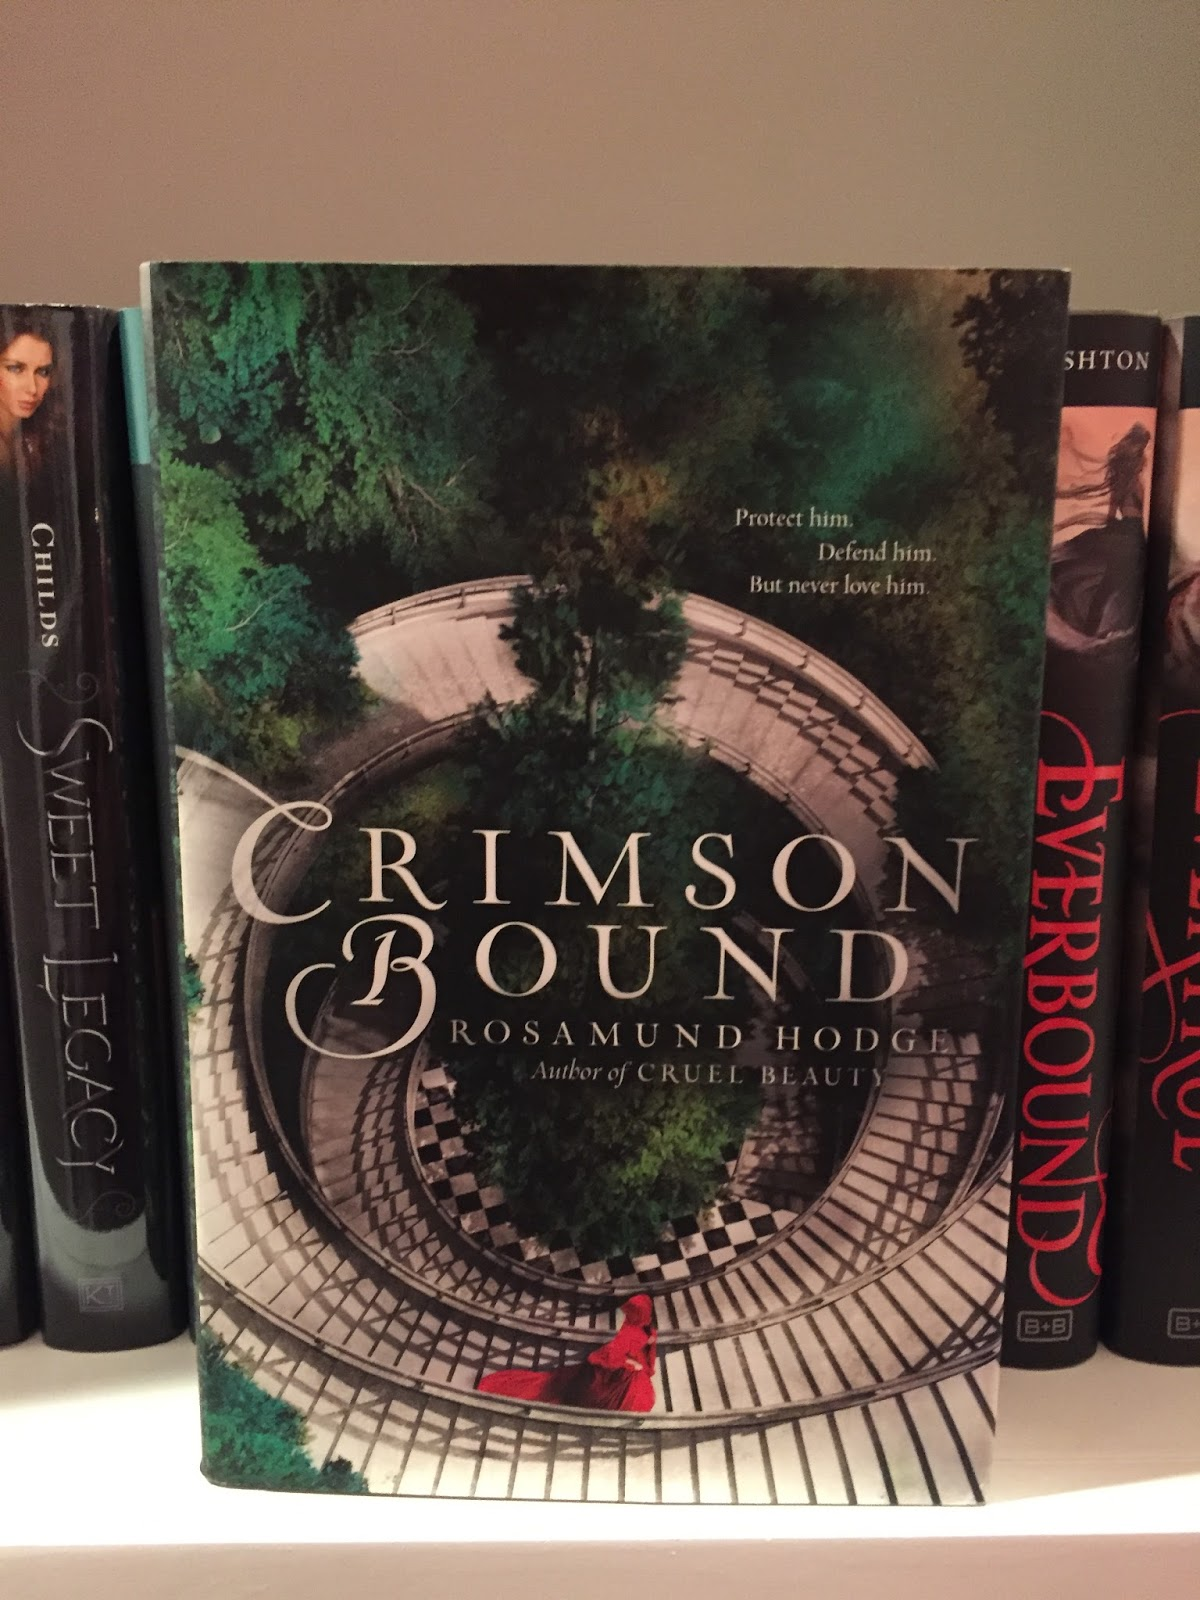 This Topic Was Harder For Me To Pick A Book For Than I Thought It Would Be,  But I Absolutely Loved Cruel Beauty And Crimson Bound Looks Amazing!